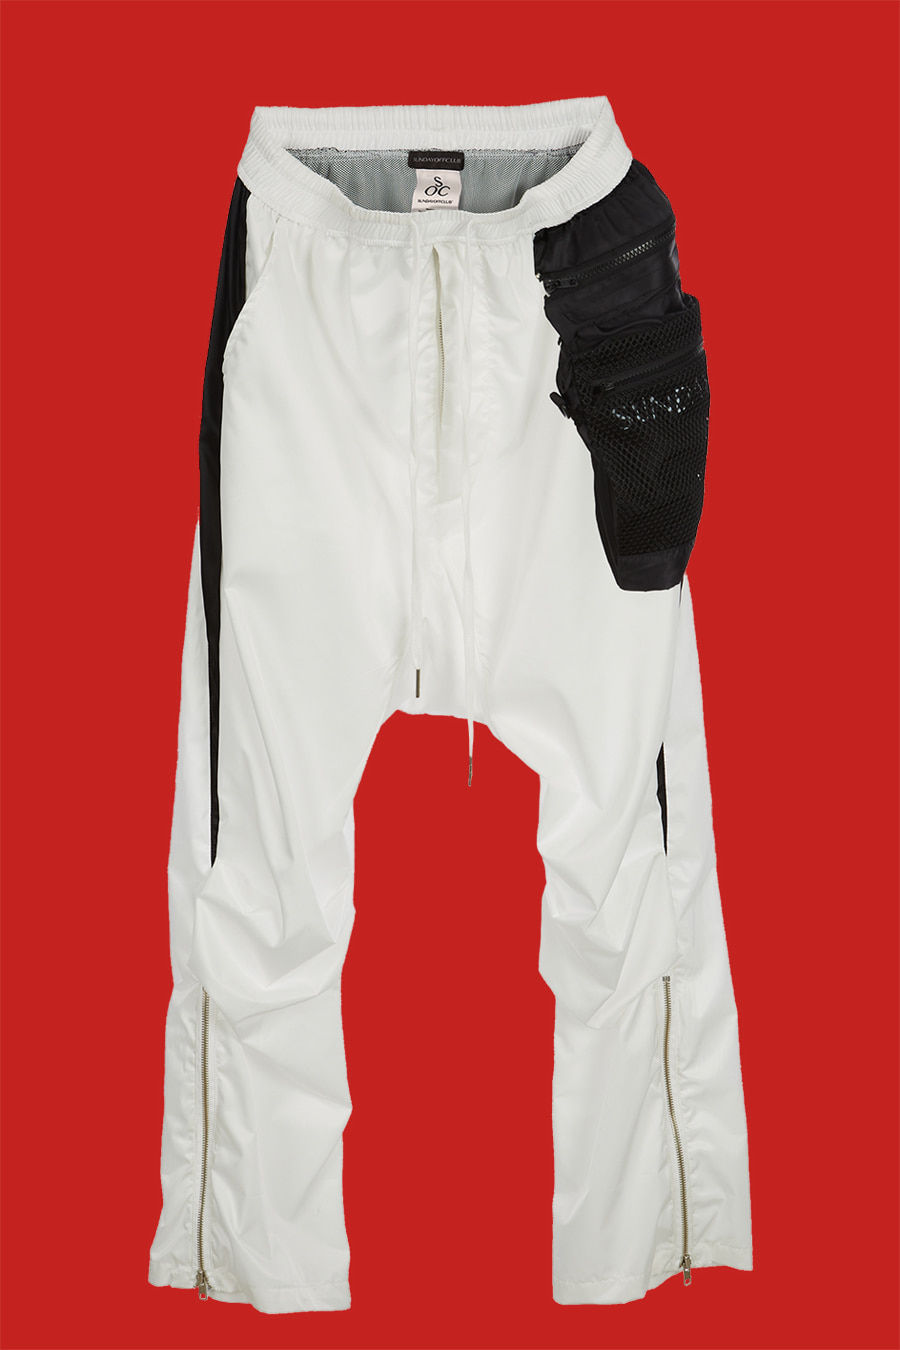 Detachable Cross Net Bag Monochrome Drop Crotch Pants - White